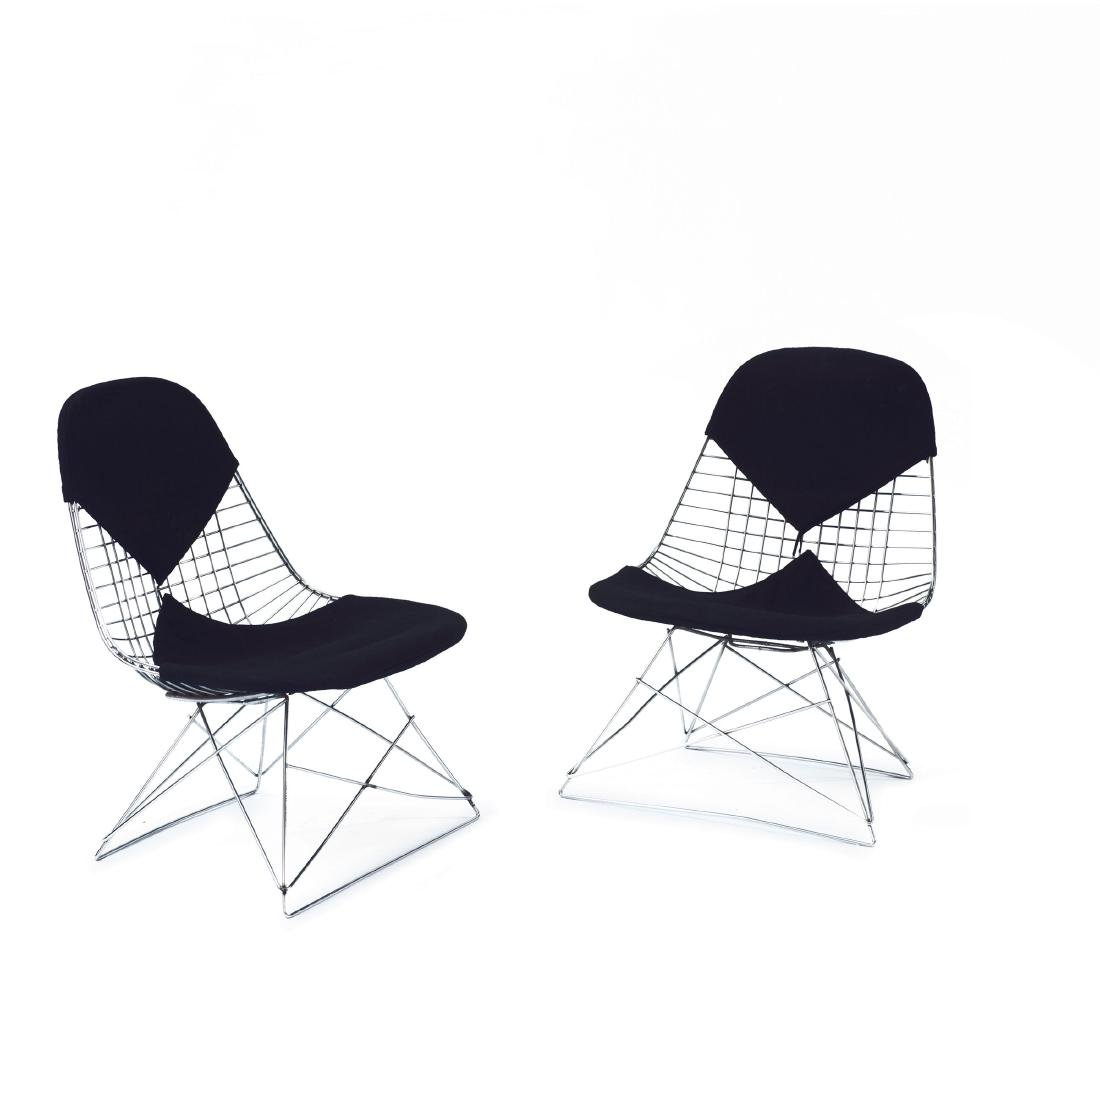 Two 'Wire mesh' chairs on 'LKR base', 1951